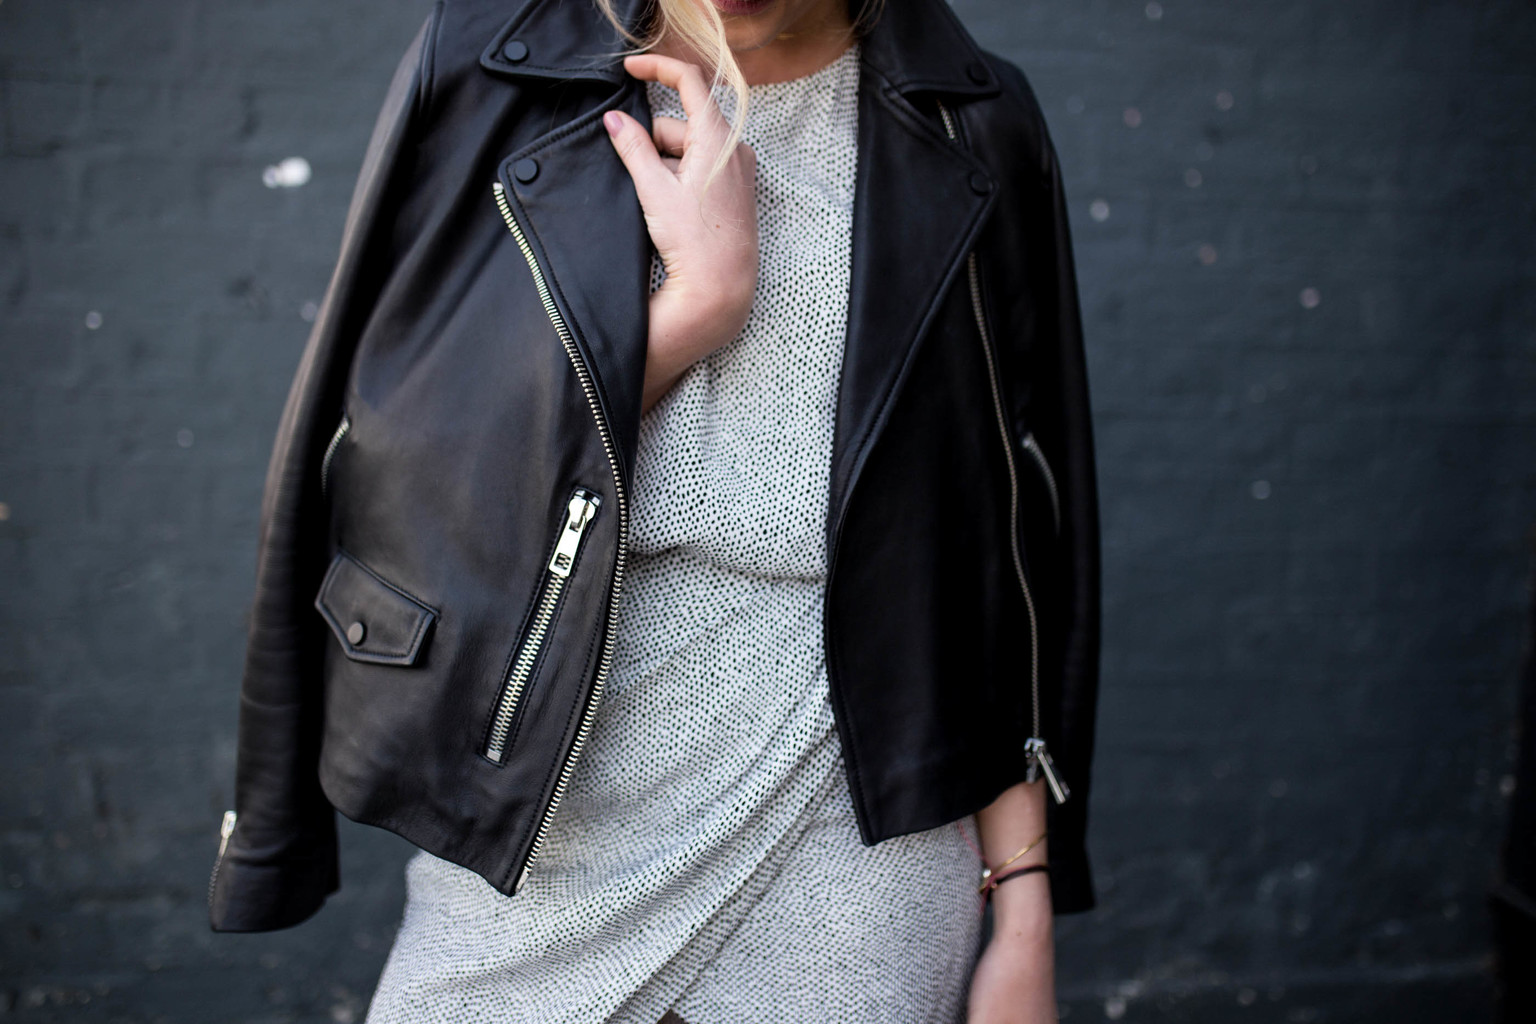 5 REASONS TO INVEST IN A GOOD LEATHER JACKET THIS SPRING